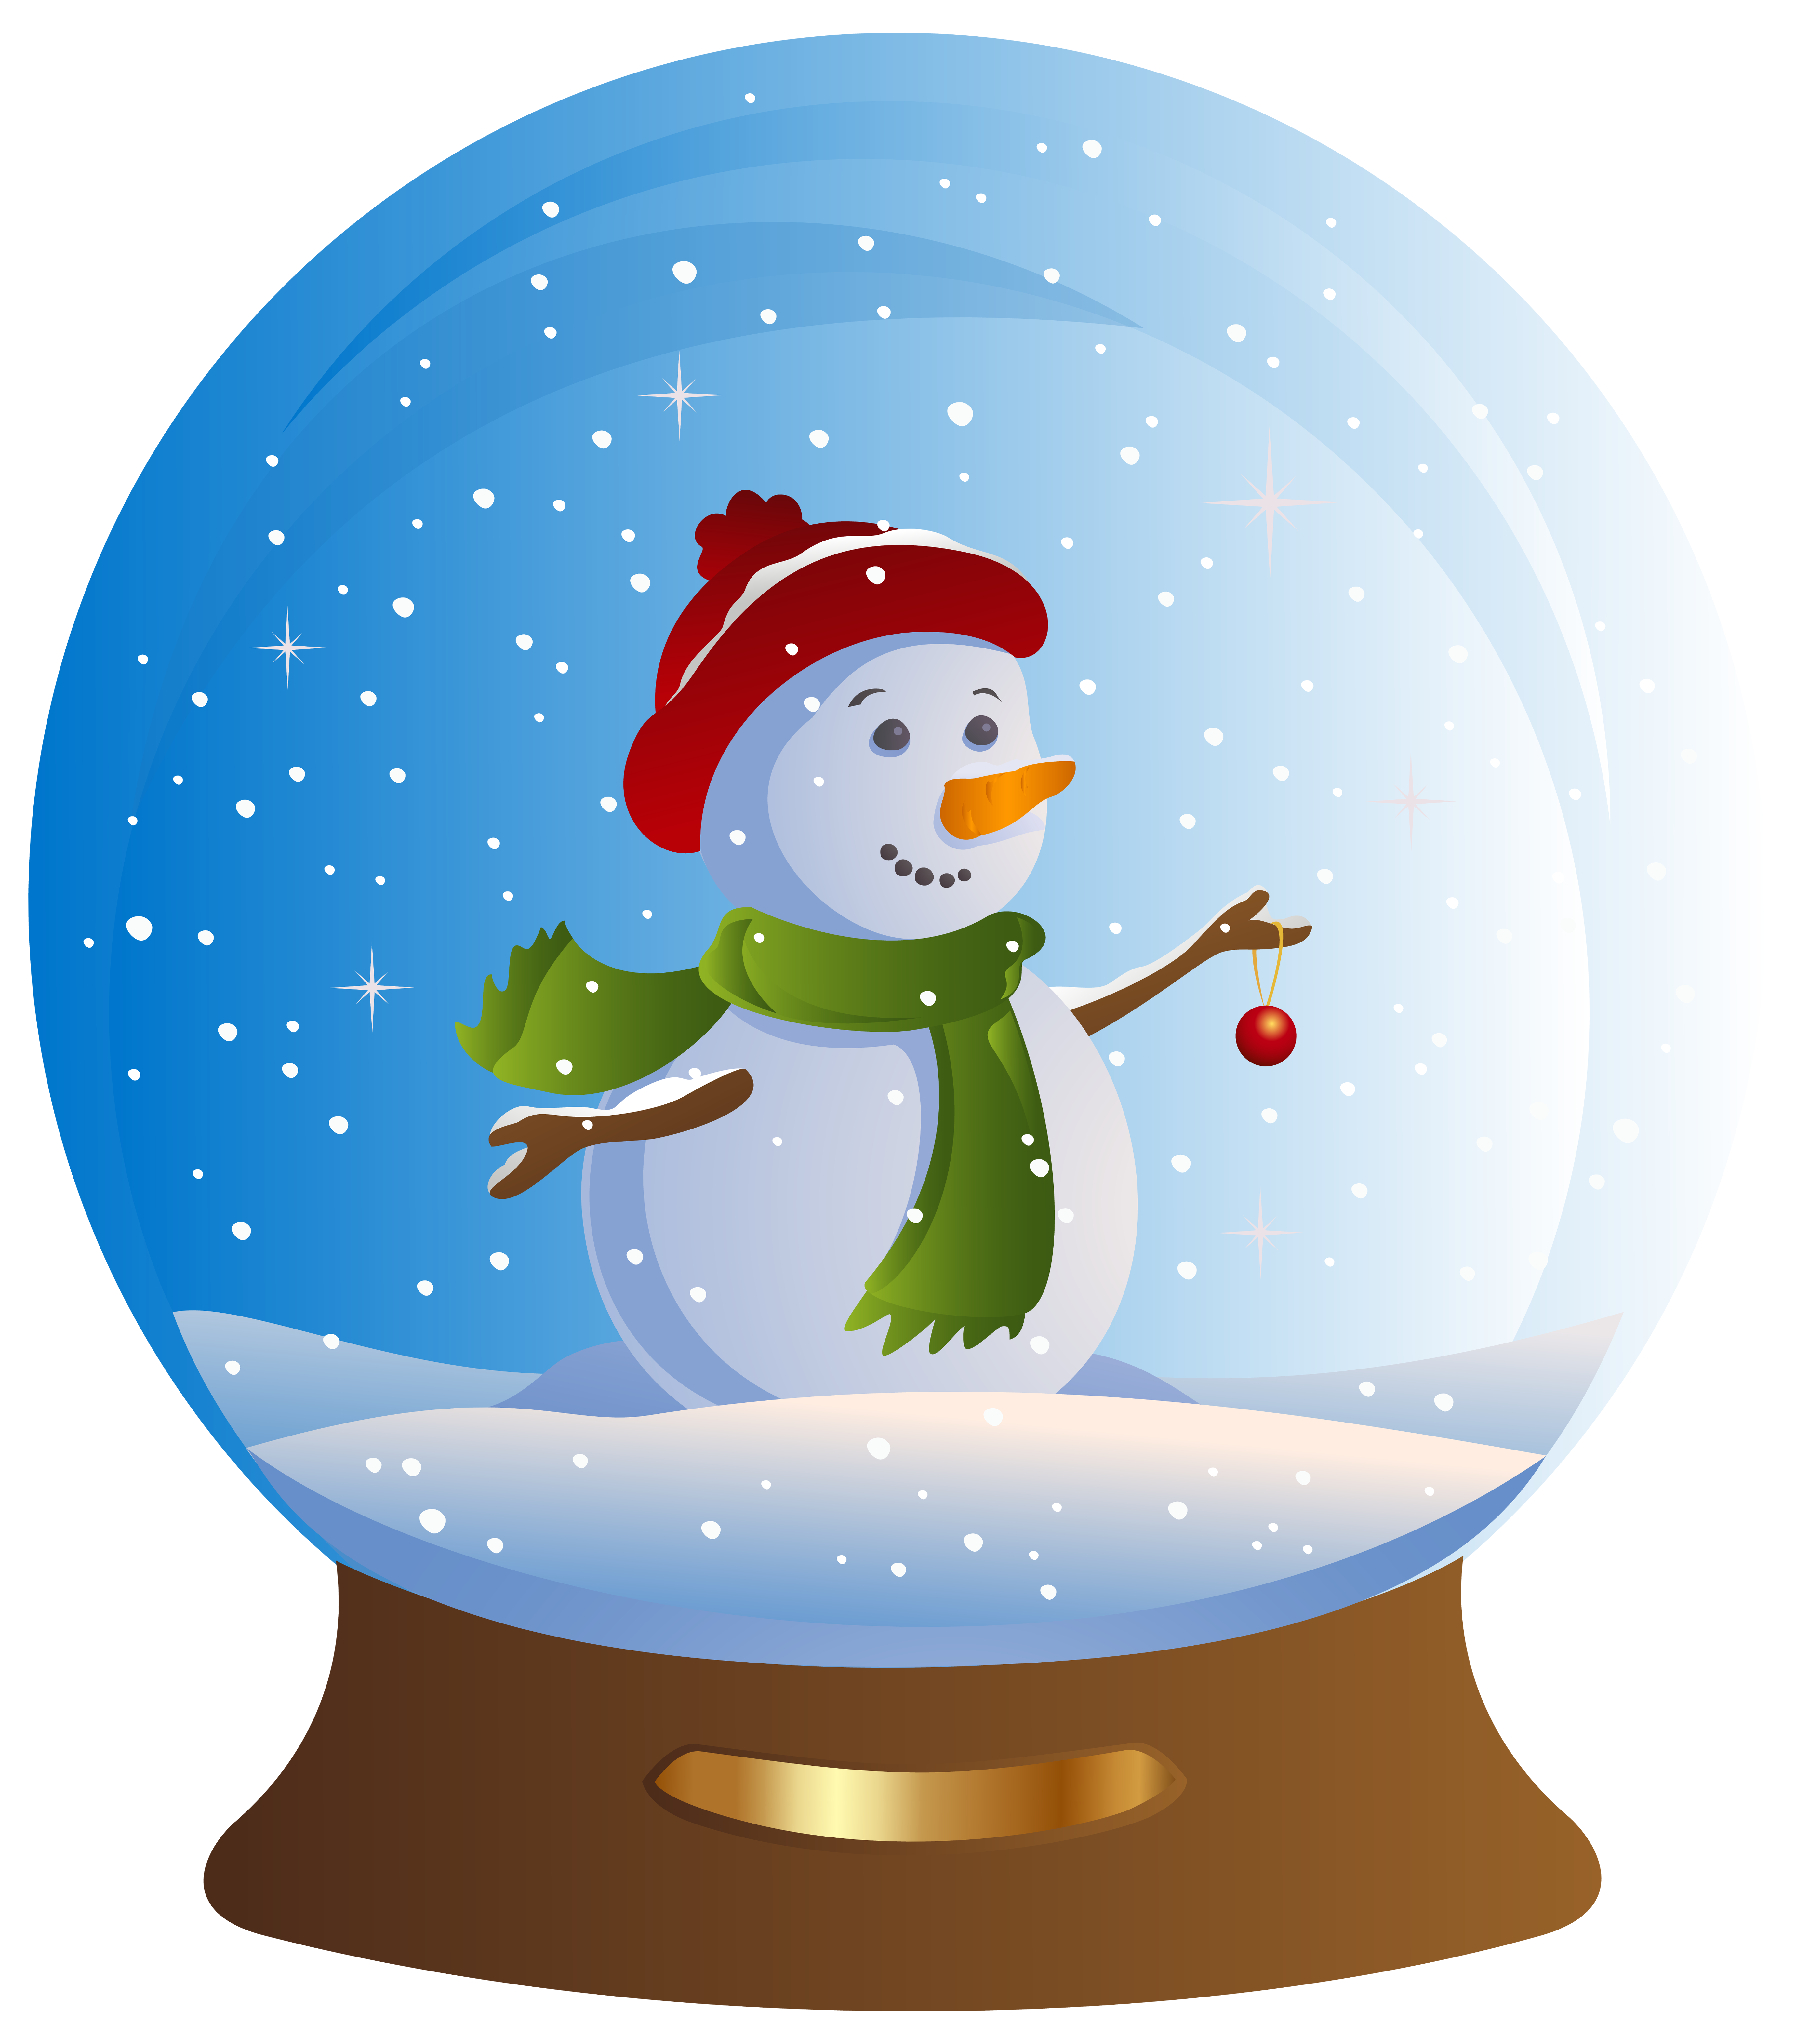 Christmas snow globe clipart png library download 28+ Collection of Snowman Snow Globe Clipart | High quality, free ... png library download